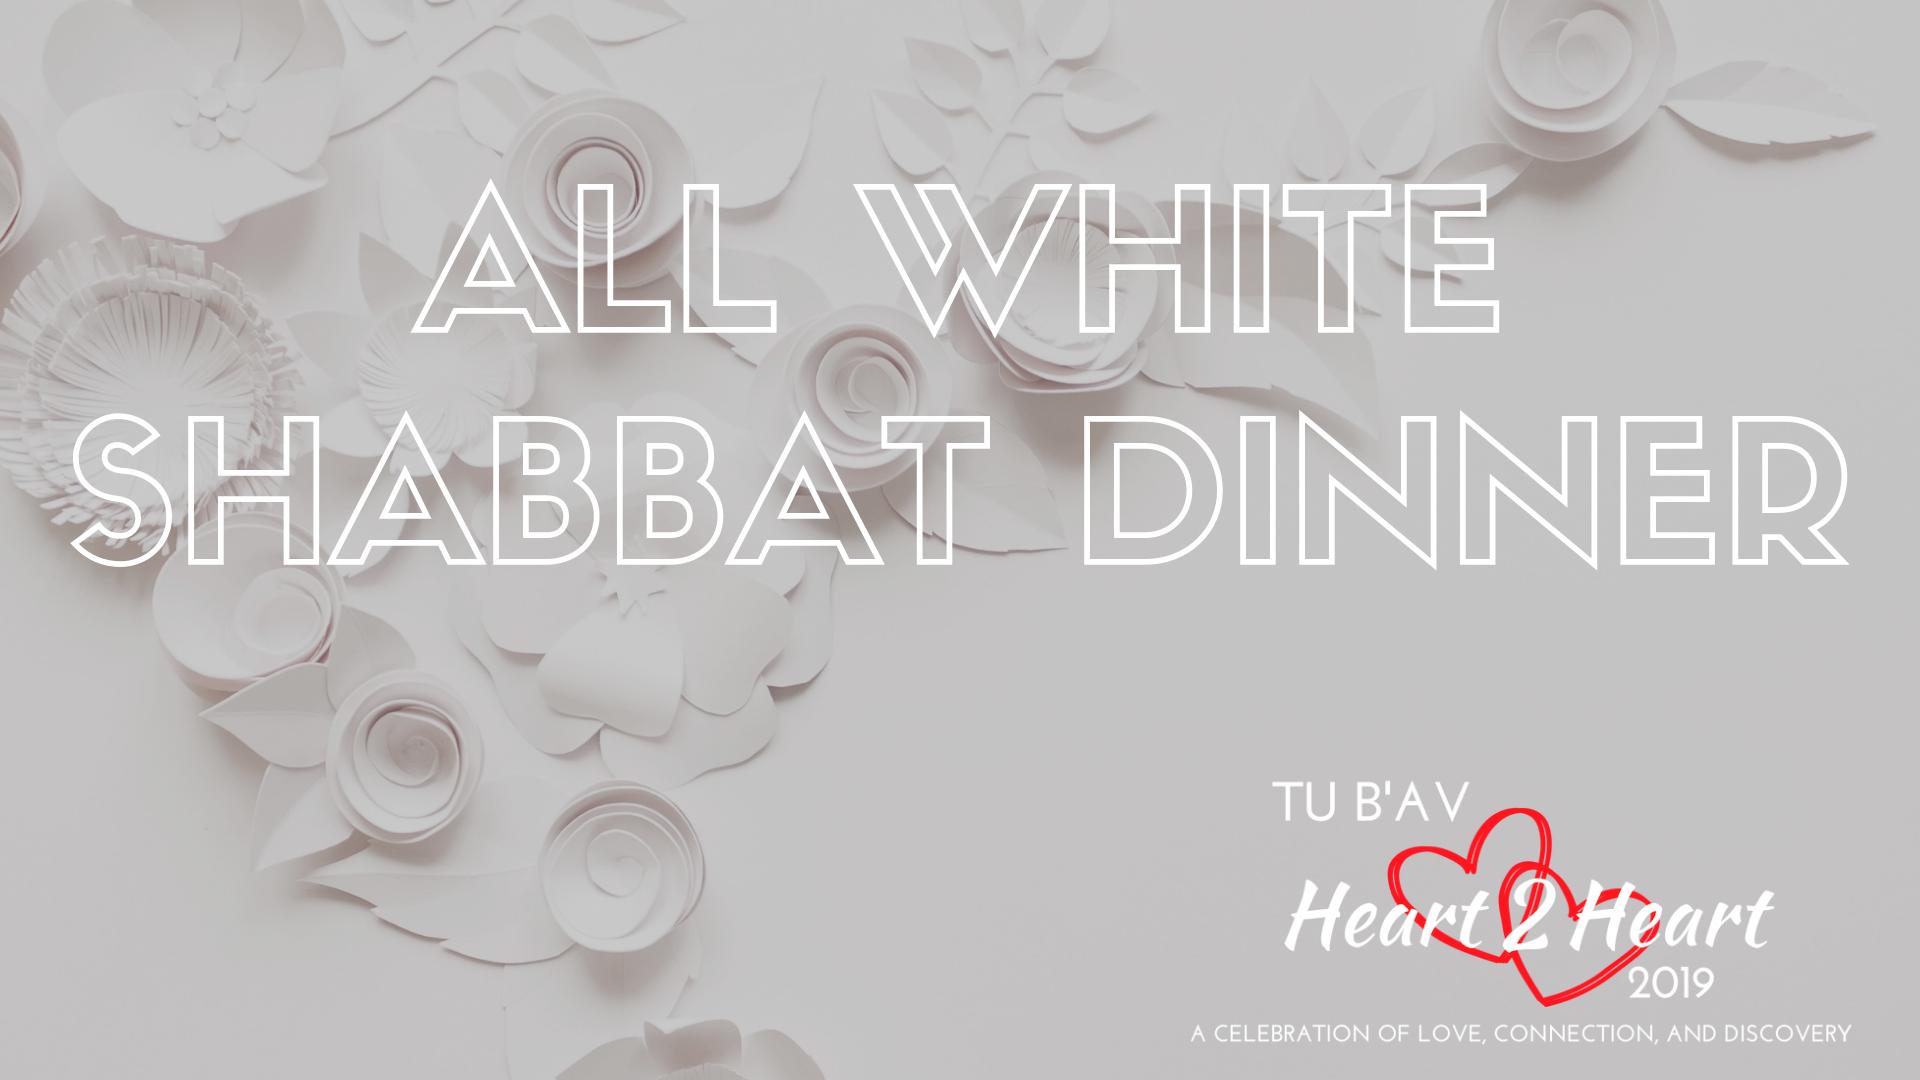 All White Shabbat Dinner event cover.png